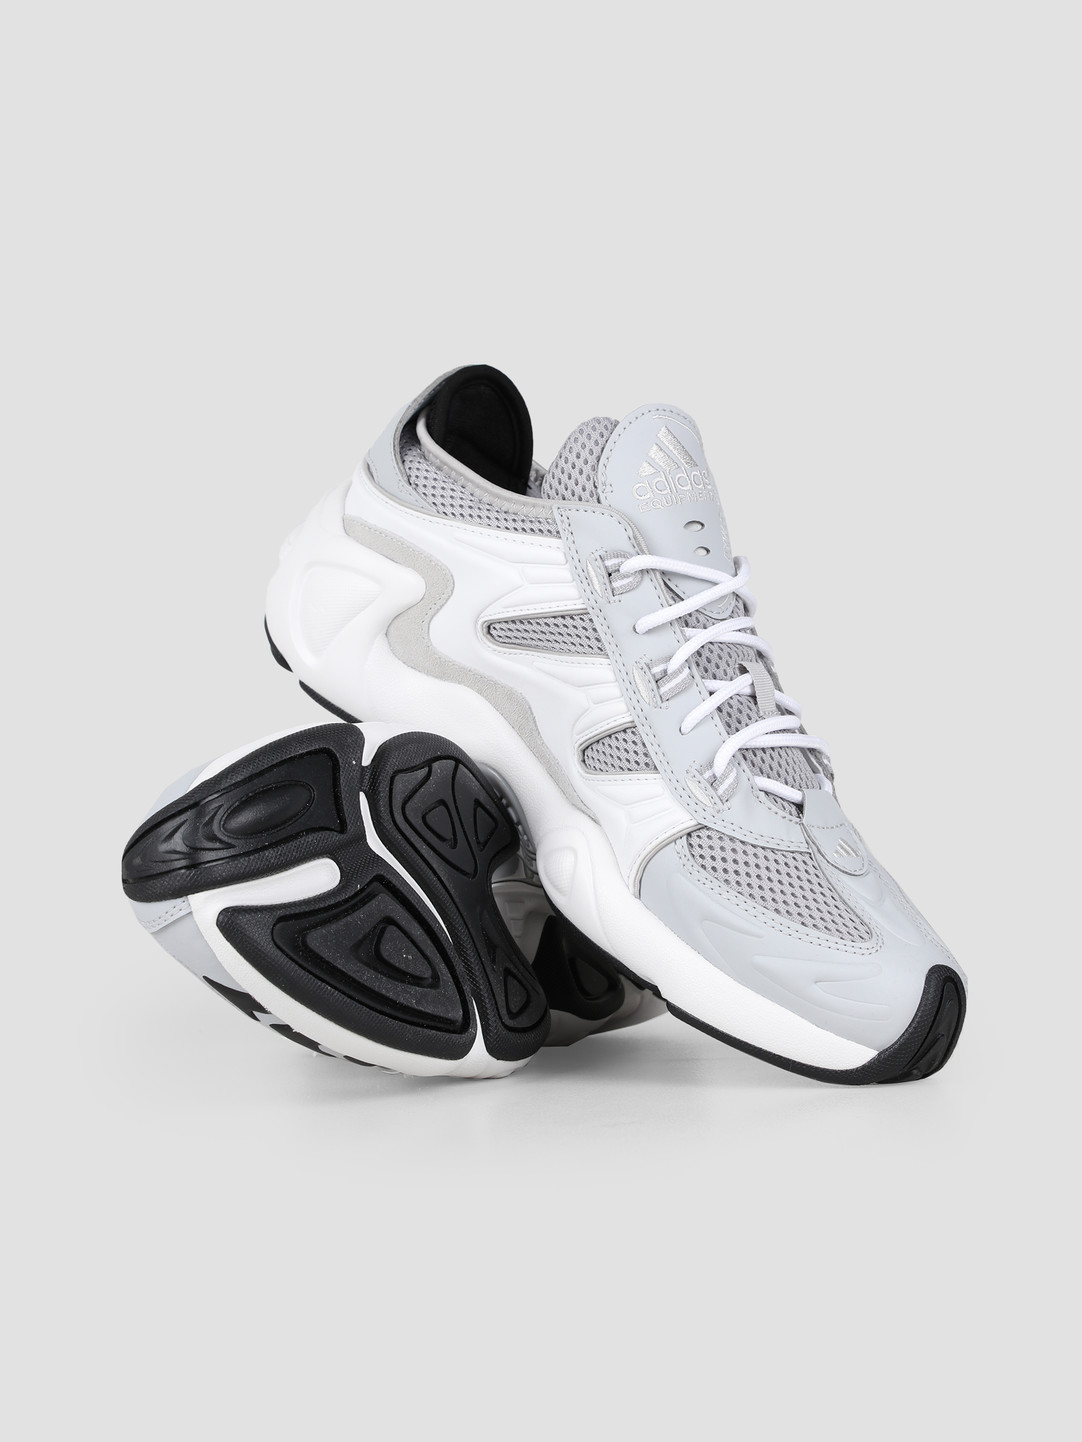 adidas adidas FYW S-97 W Gretwo Cry White EE5325